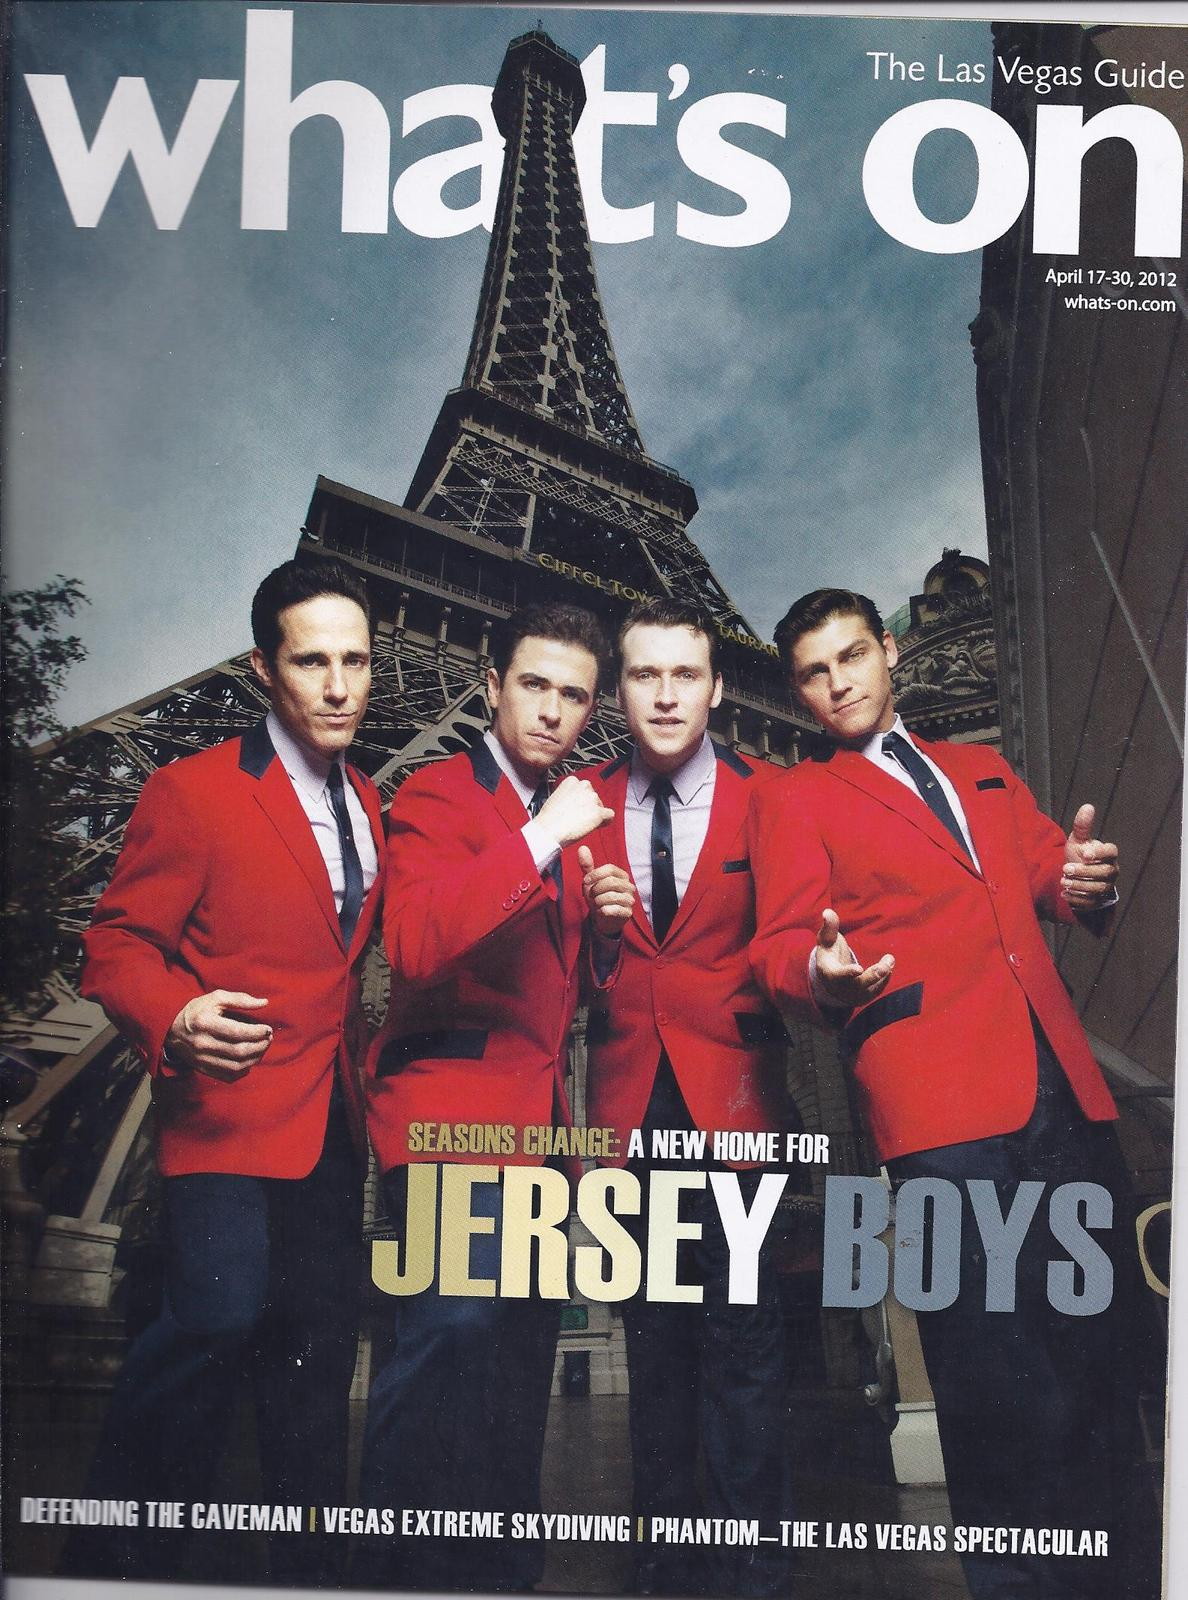 Primary image for JERSEY BOYS  @ WHATS ON Las Vegas Magazine APR 2012